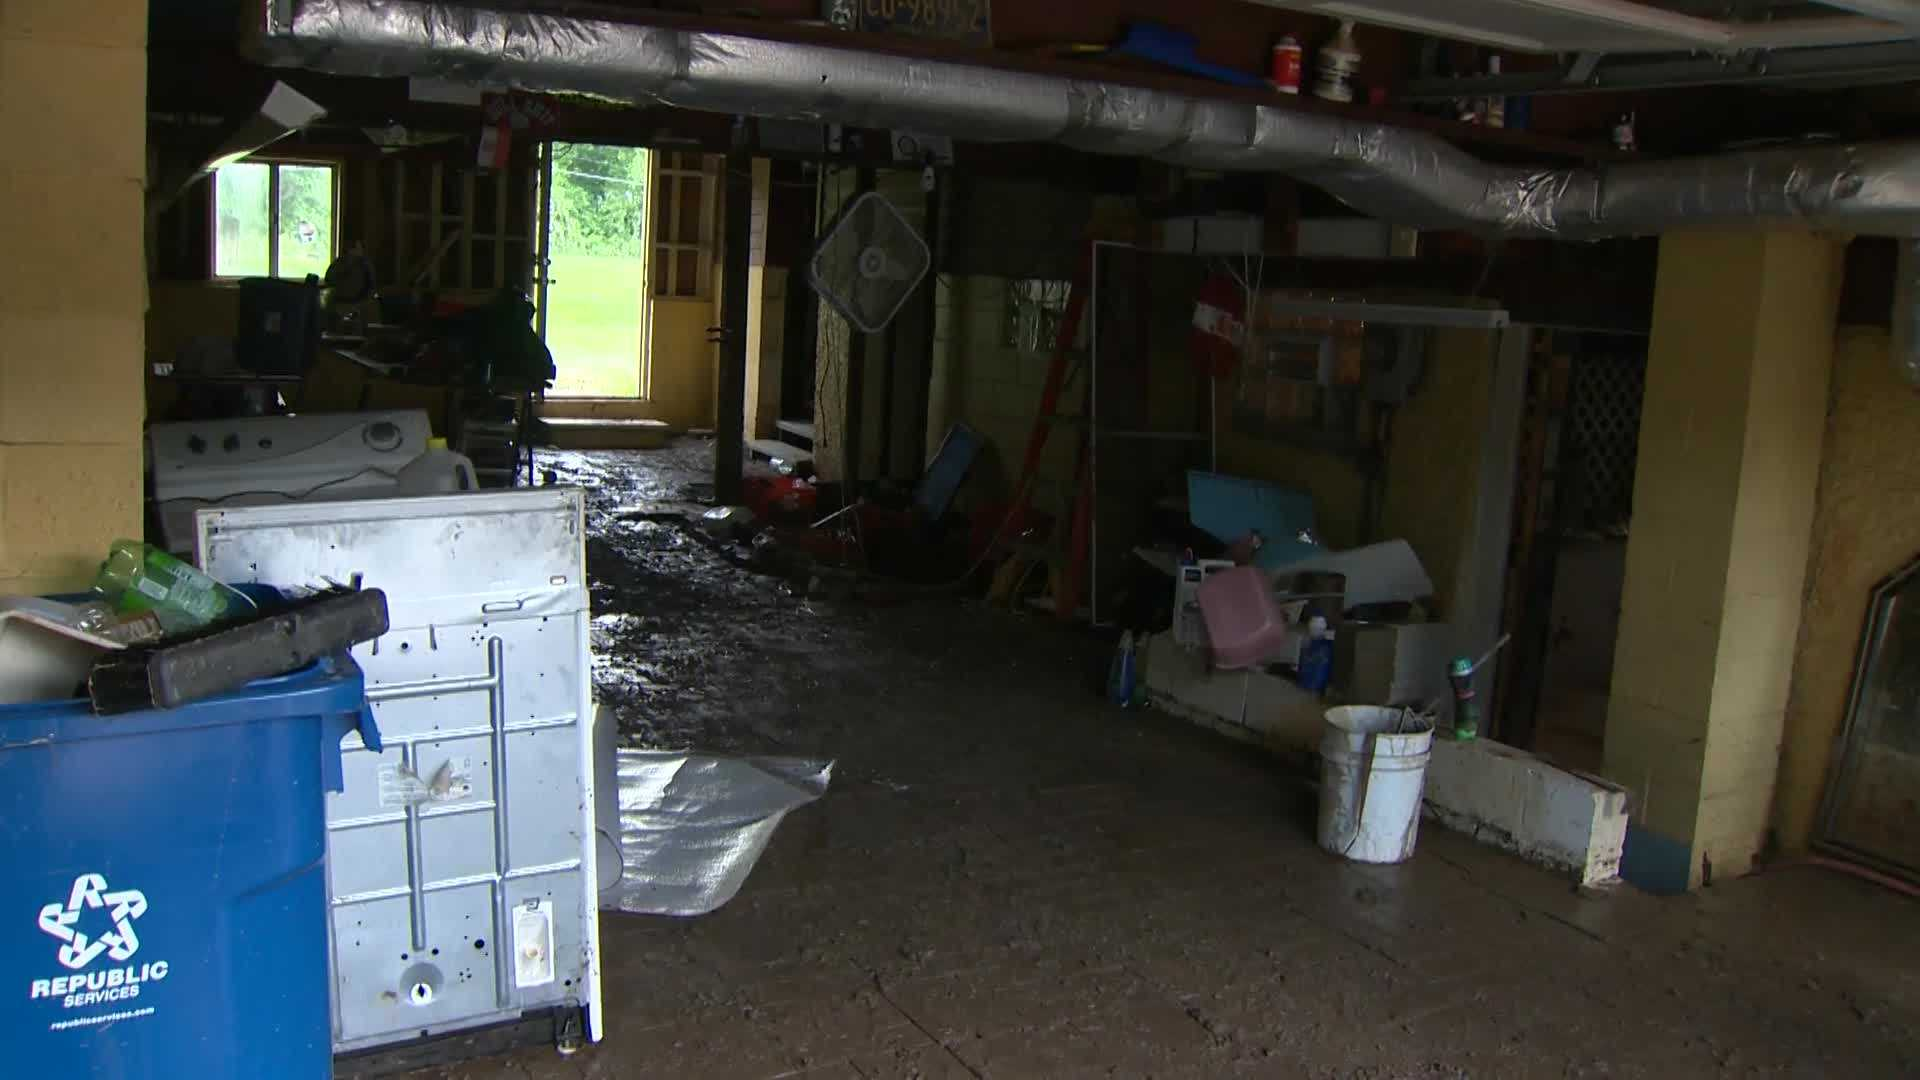 flooding aftermath in basement